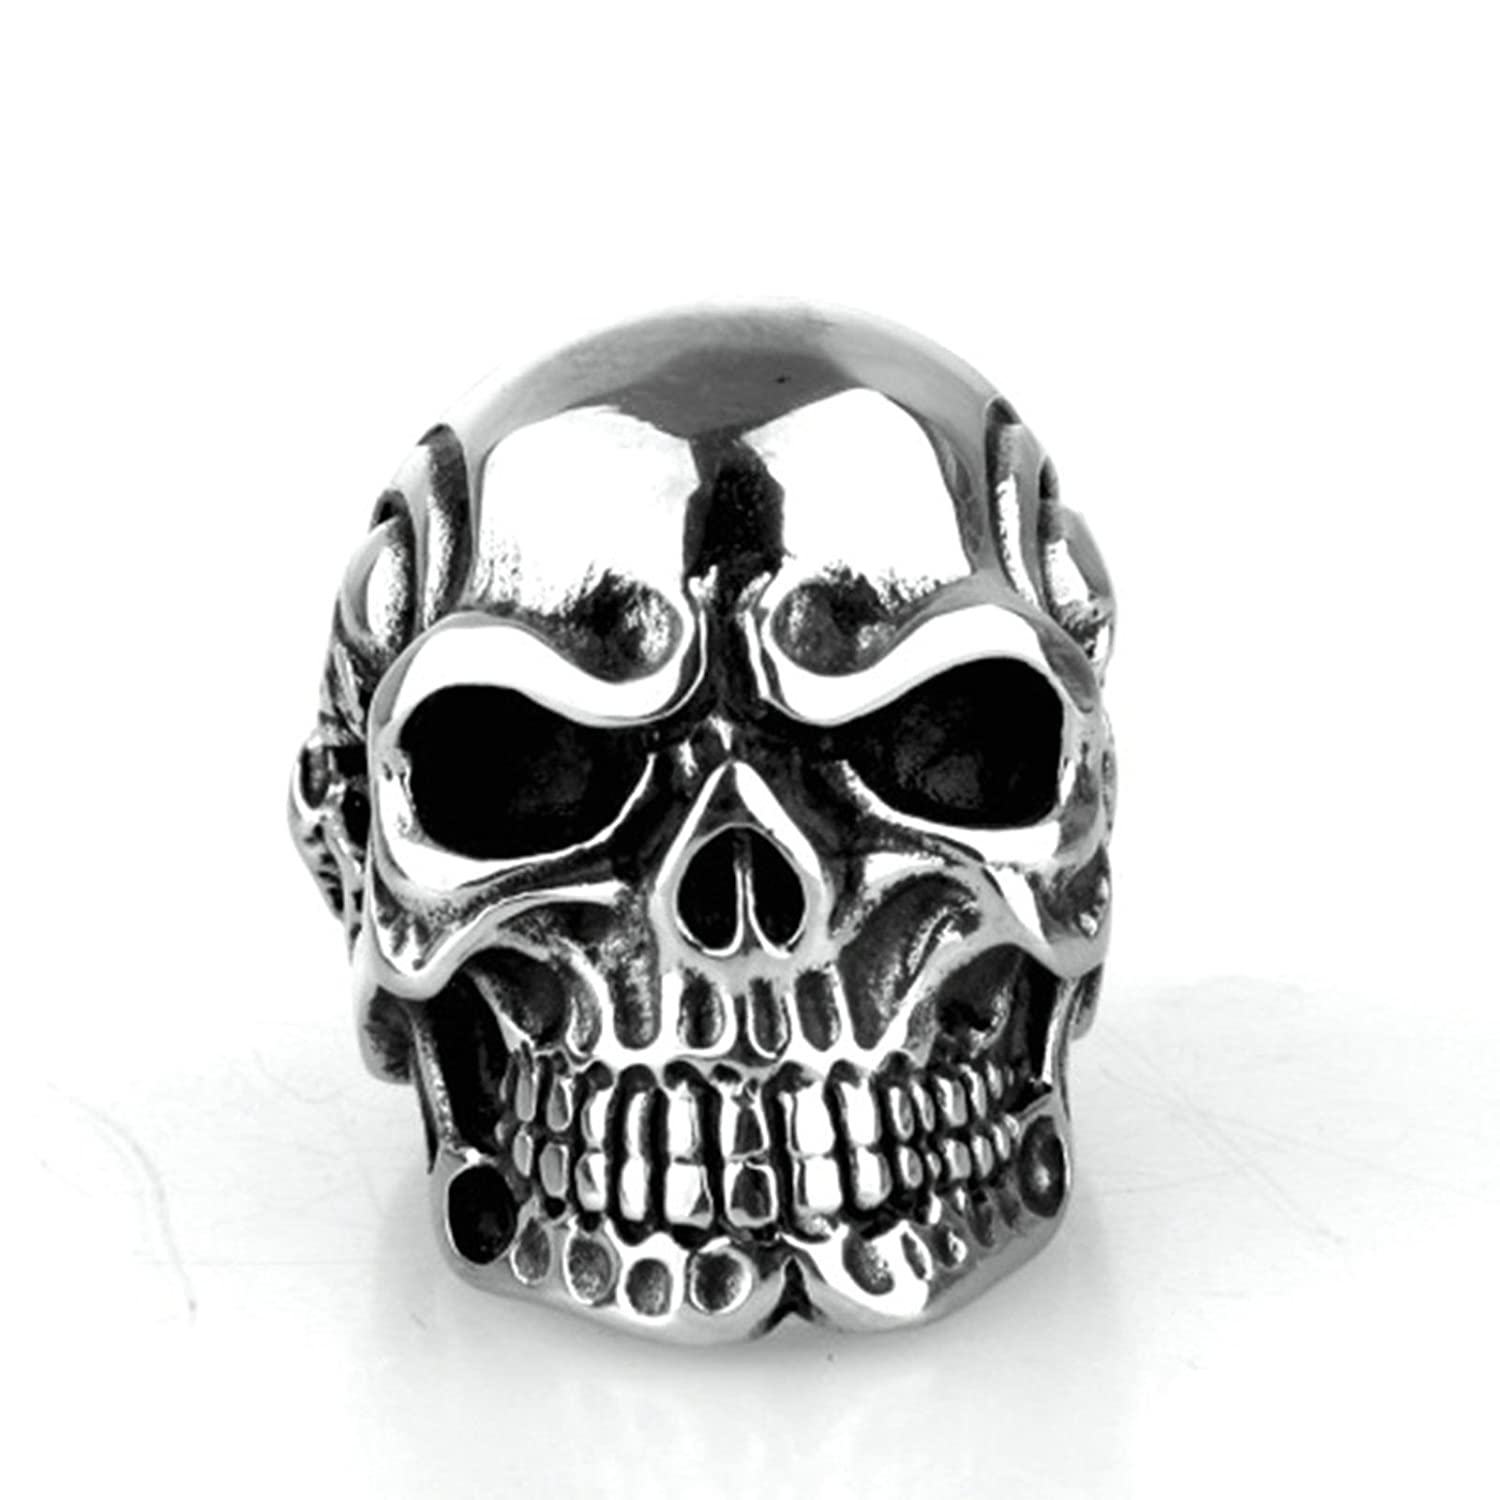 Skull Stainless Steel Pirate Ring - DeluxeAdultCostumes.com